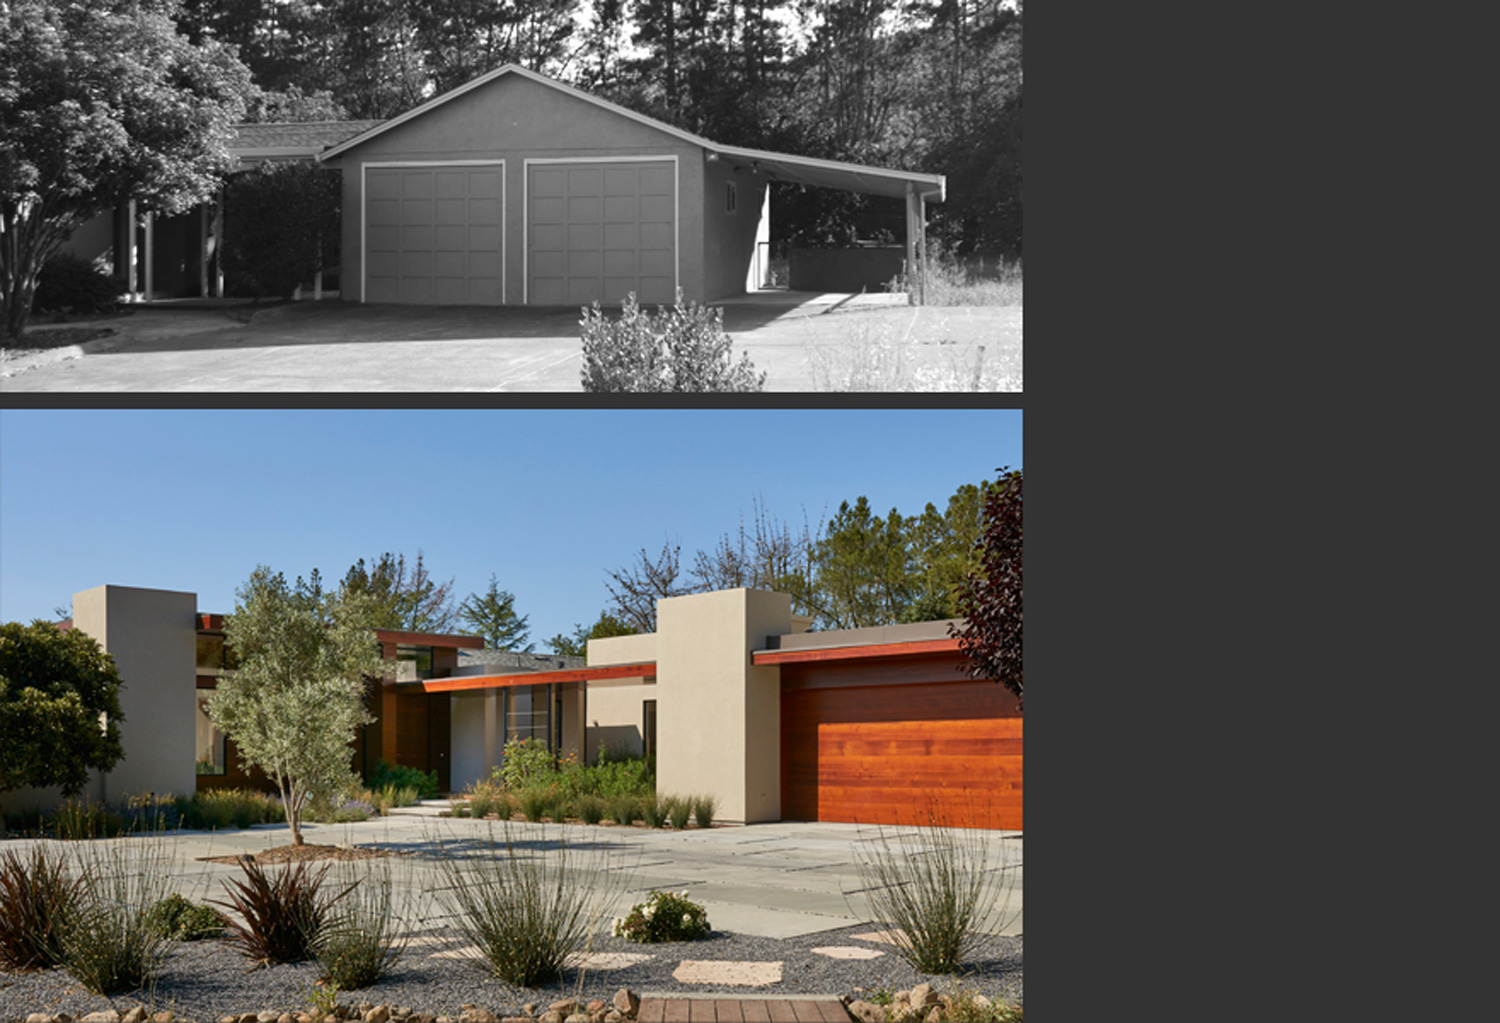 miers_hse-17_before-after.jpg